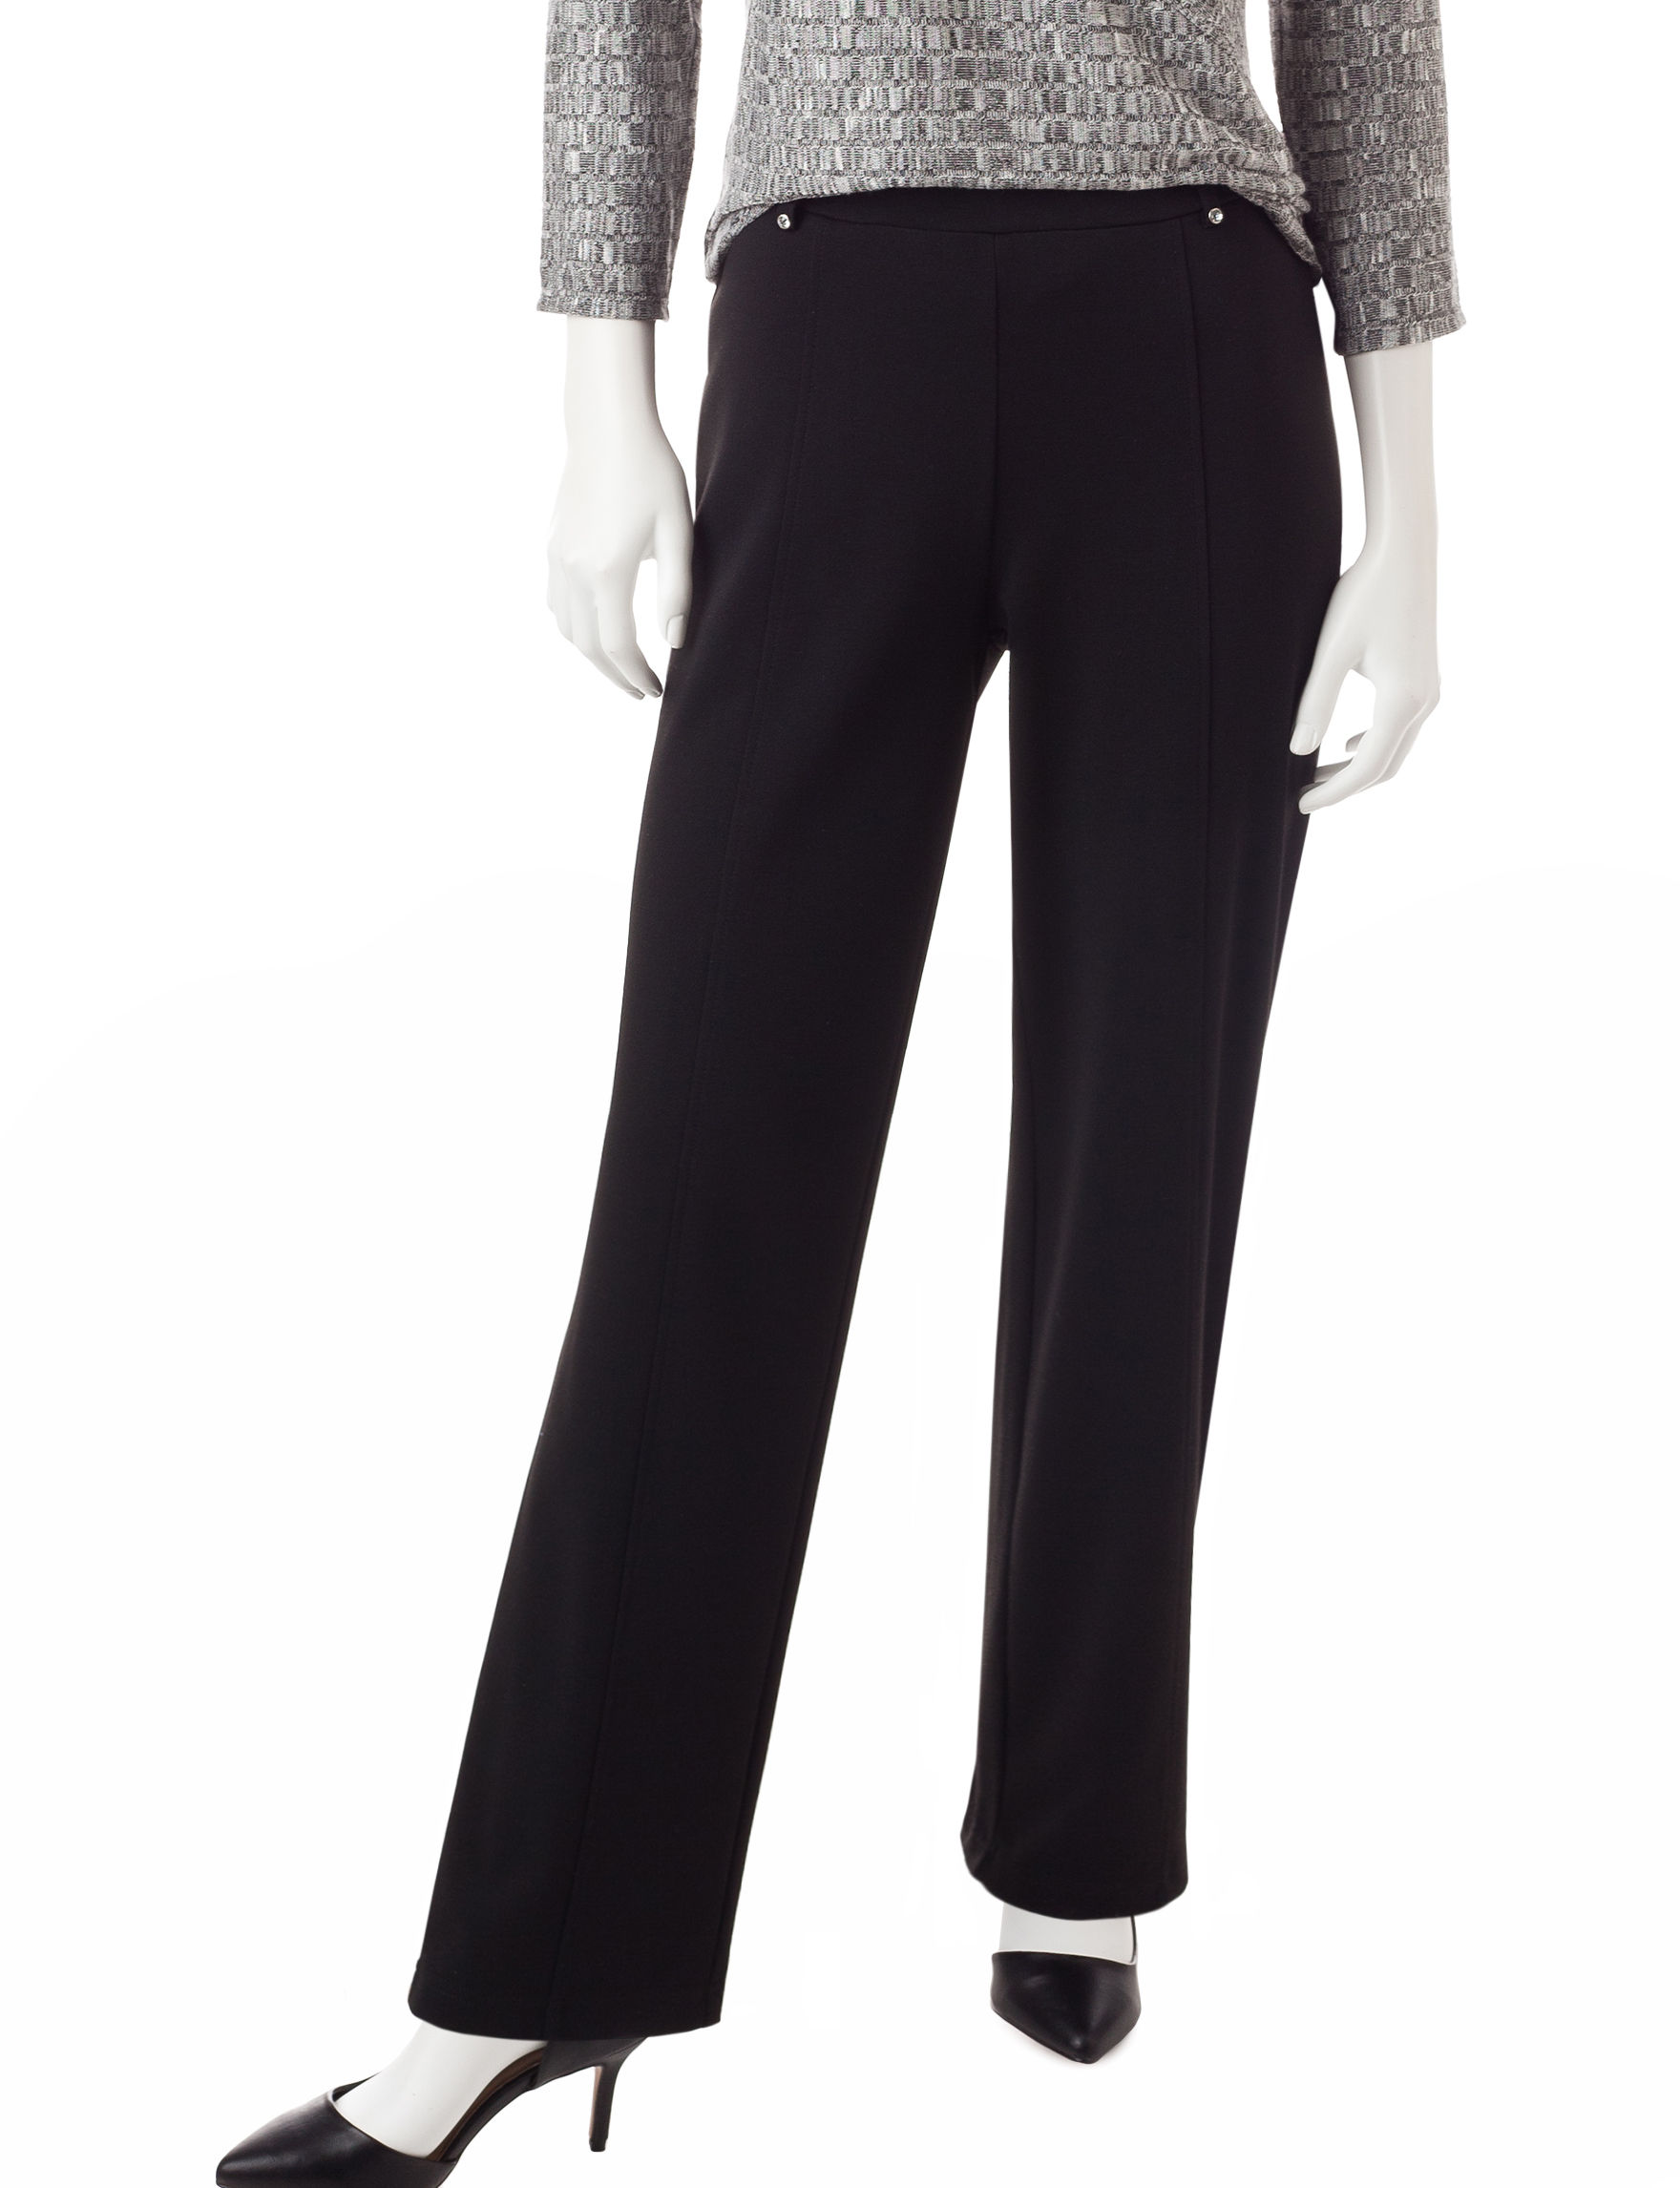 Search By Inseam - Great-fitting jeans and pants.